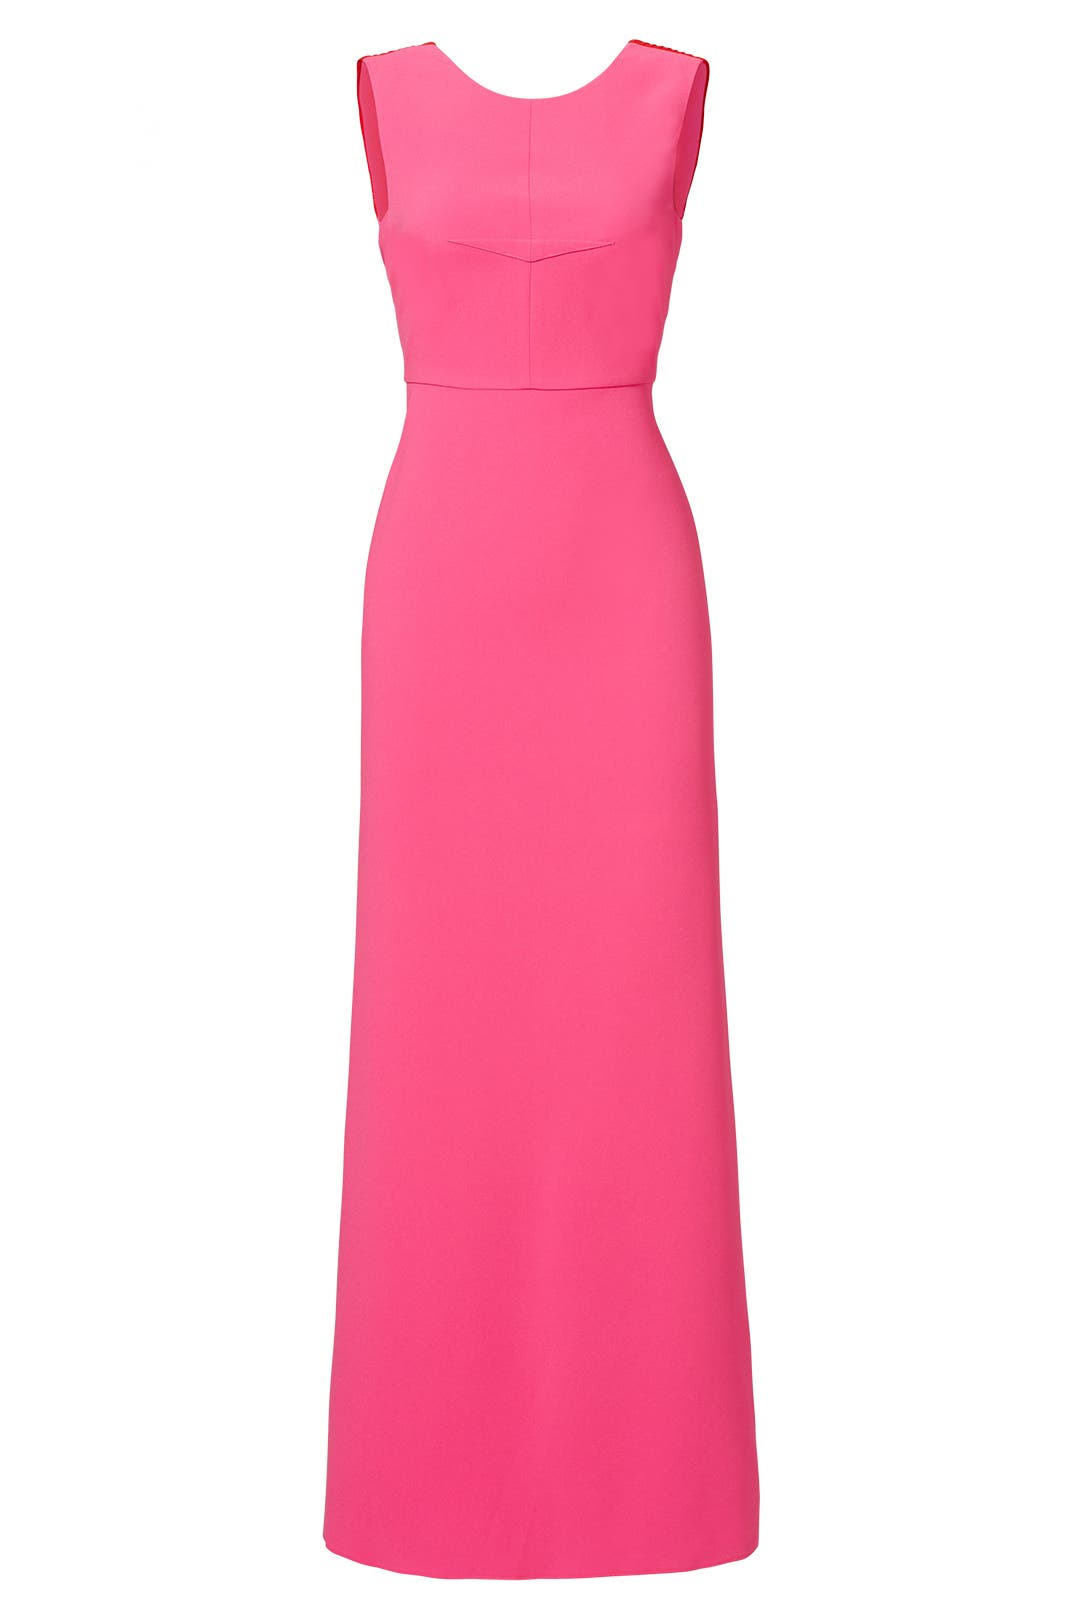 Izabelle Gown by BCBGMAXAZRIA for $90 | Rent the Runway